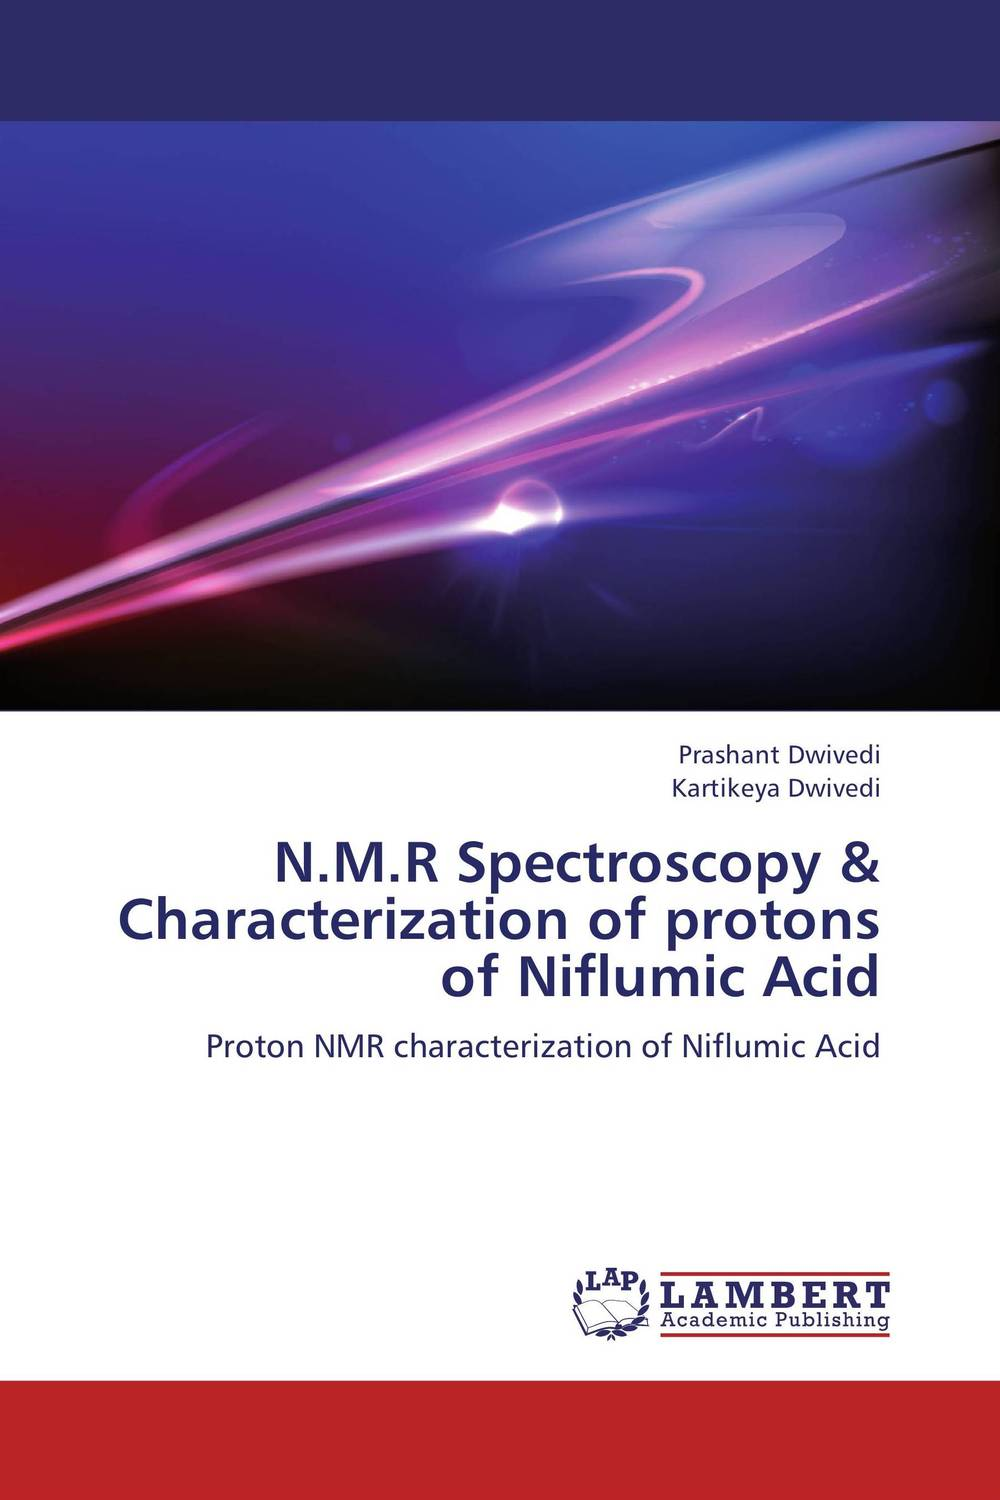 N.M.R Spectroscopy & Characterization of protons of Niflumic Acid surface nuclear magnetic resonance